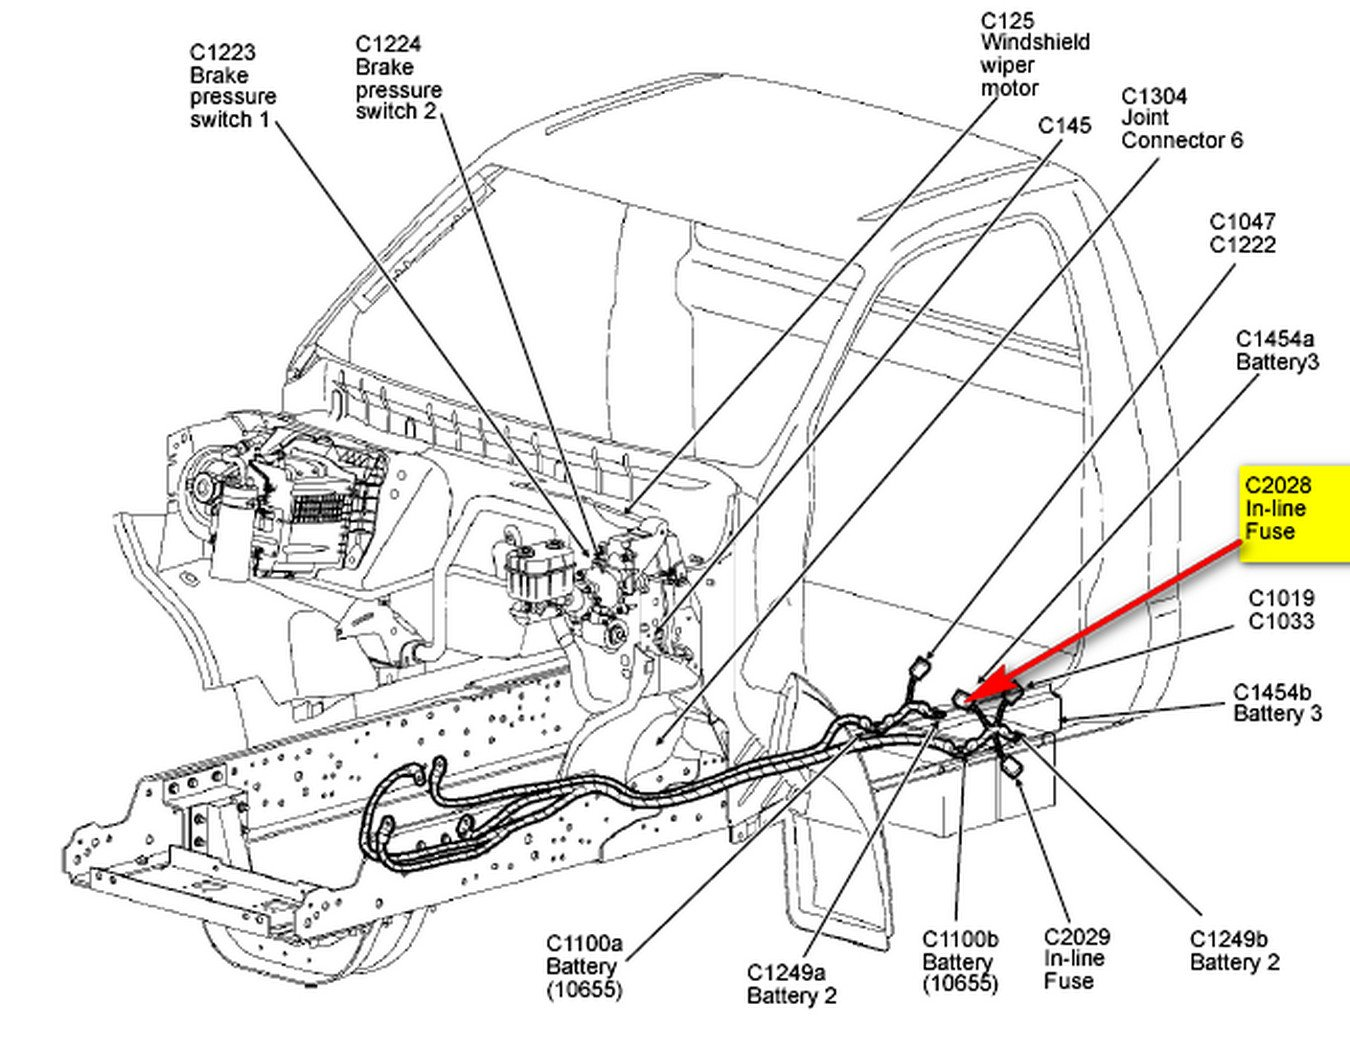 2005 Chrysler Town And Country Parts Diagram Seat together with Ford F350 Super Duty Wiring Diagram also Daewoo Lanos Engine Wiring Diagram With Blueprint Pics 1998 Jeep Cherokee On 2001 further 2000 Ford Expedition Fuse Box Diagram likewise 1998 Cruise Control Wiring 348887. on ford power window wiring diagram